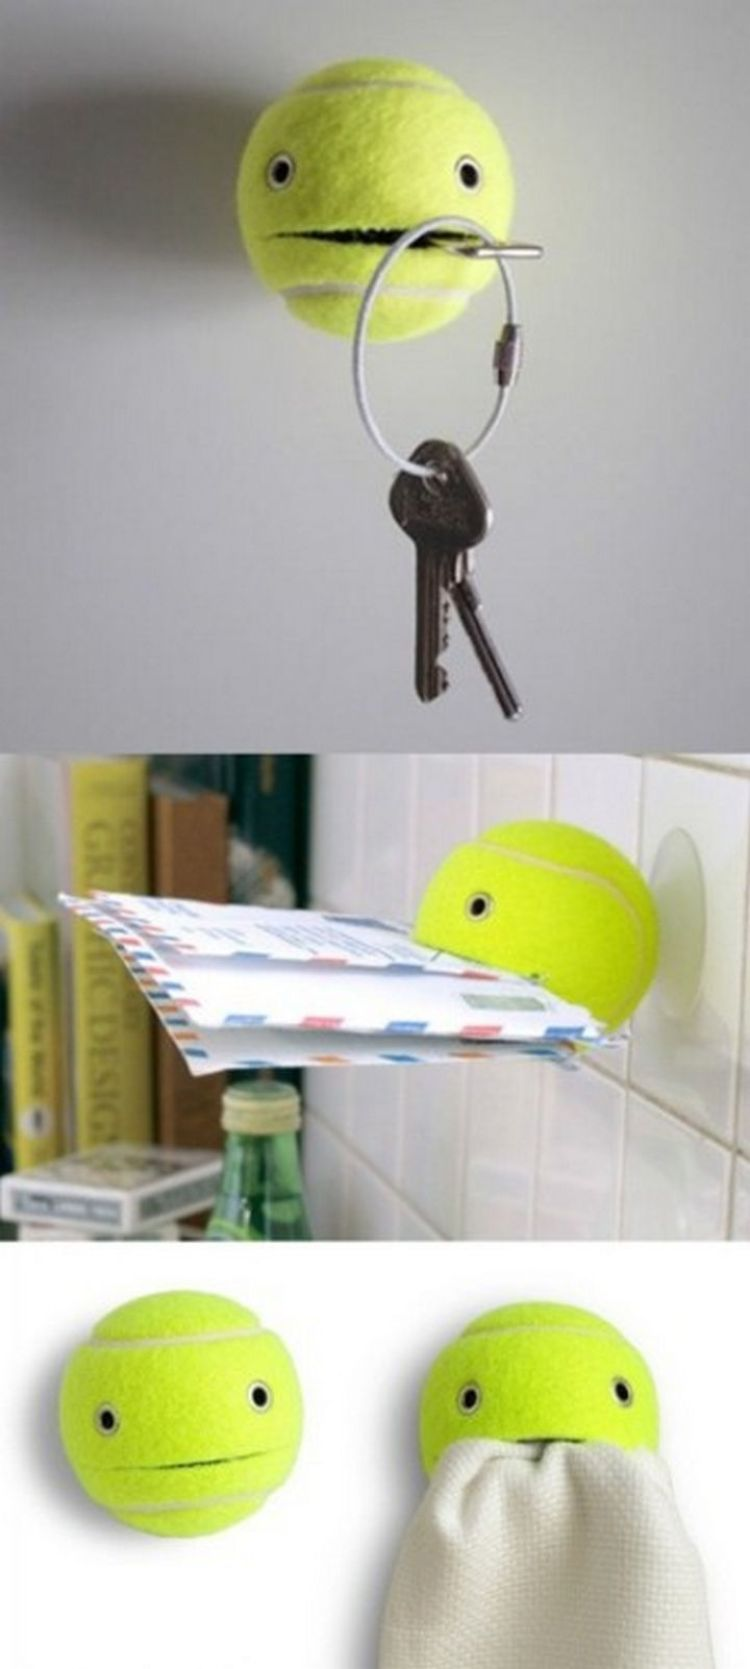 52 Cleaning and Life Hacks - Create a unique key holder using a tennis ball and a suction cup.